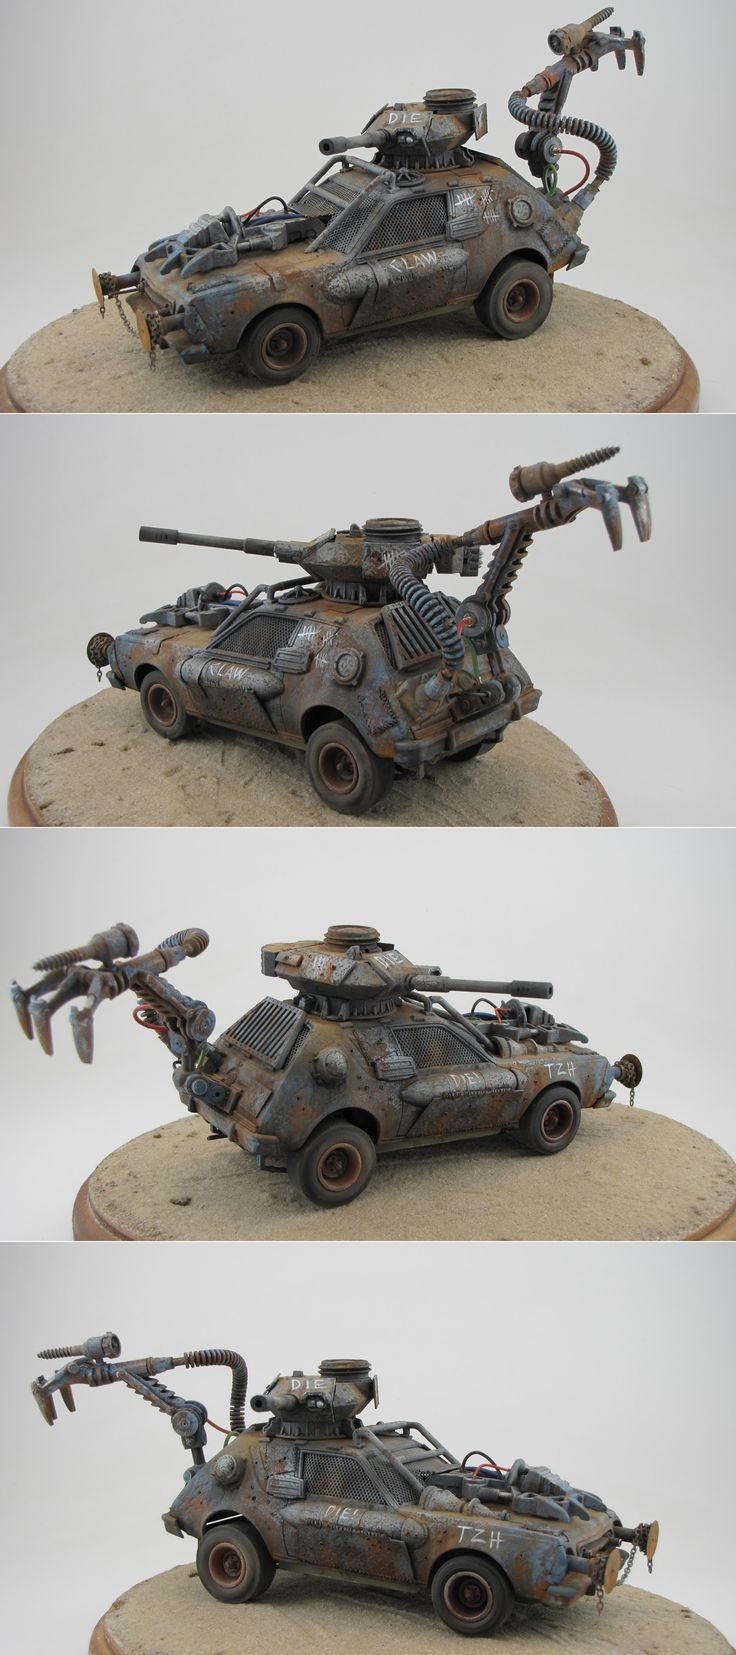 CLAW, the latest in a long line of Toothless Zombie Hunter vehicles. http://doctorcrankyslabratory.blogspot.com/2012/01/little-styrene-little-sand-presto.html